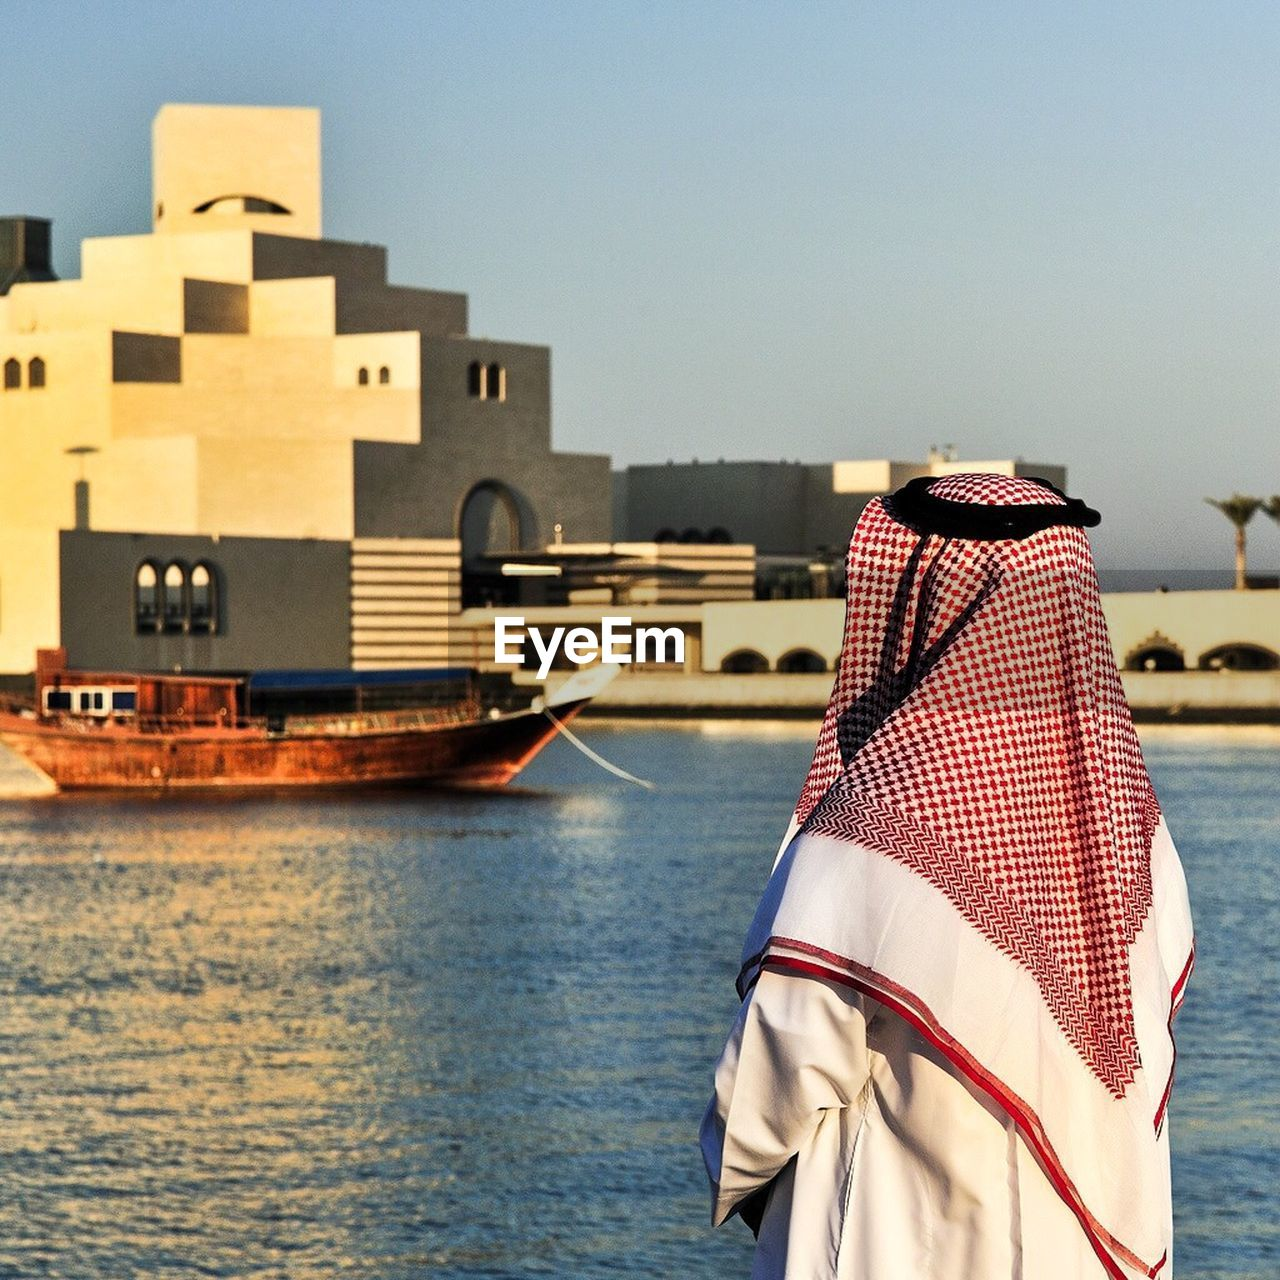 Rear view of an Arabic man looking at moored boat moored in lake against built structure